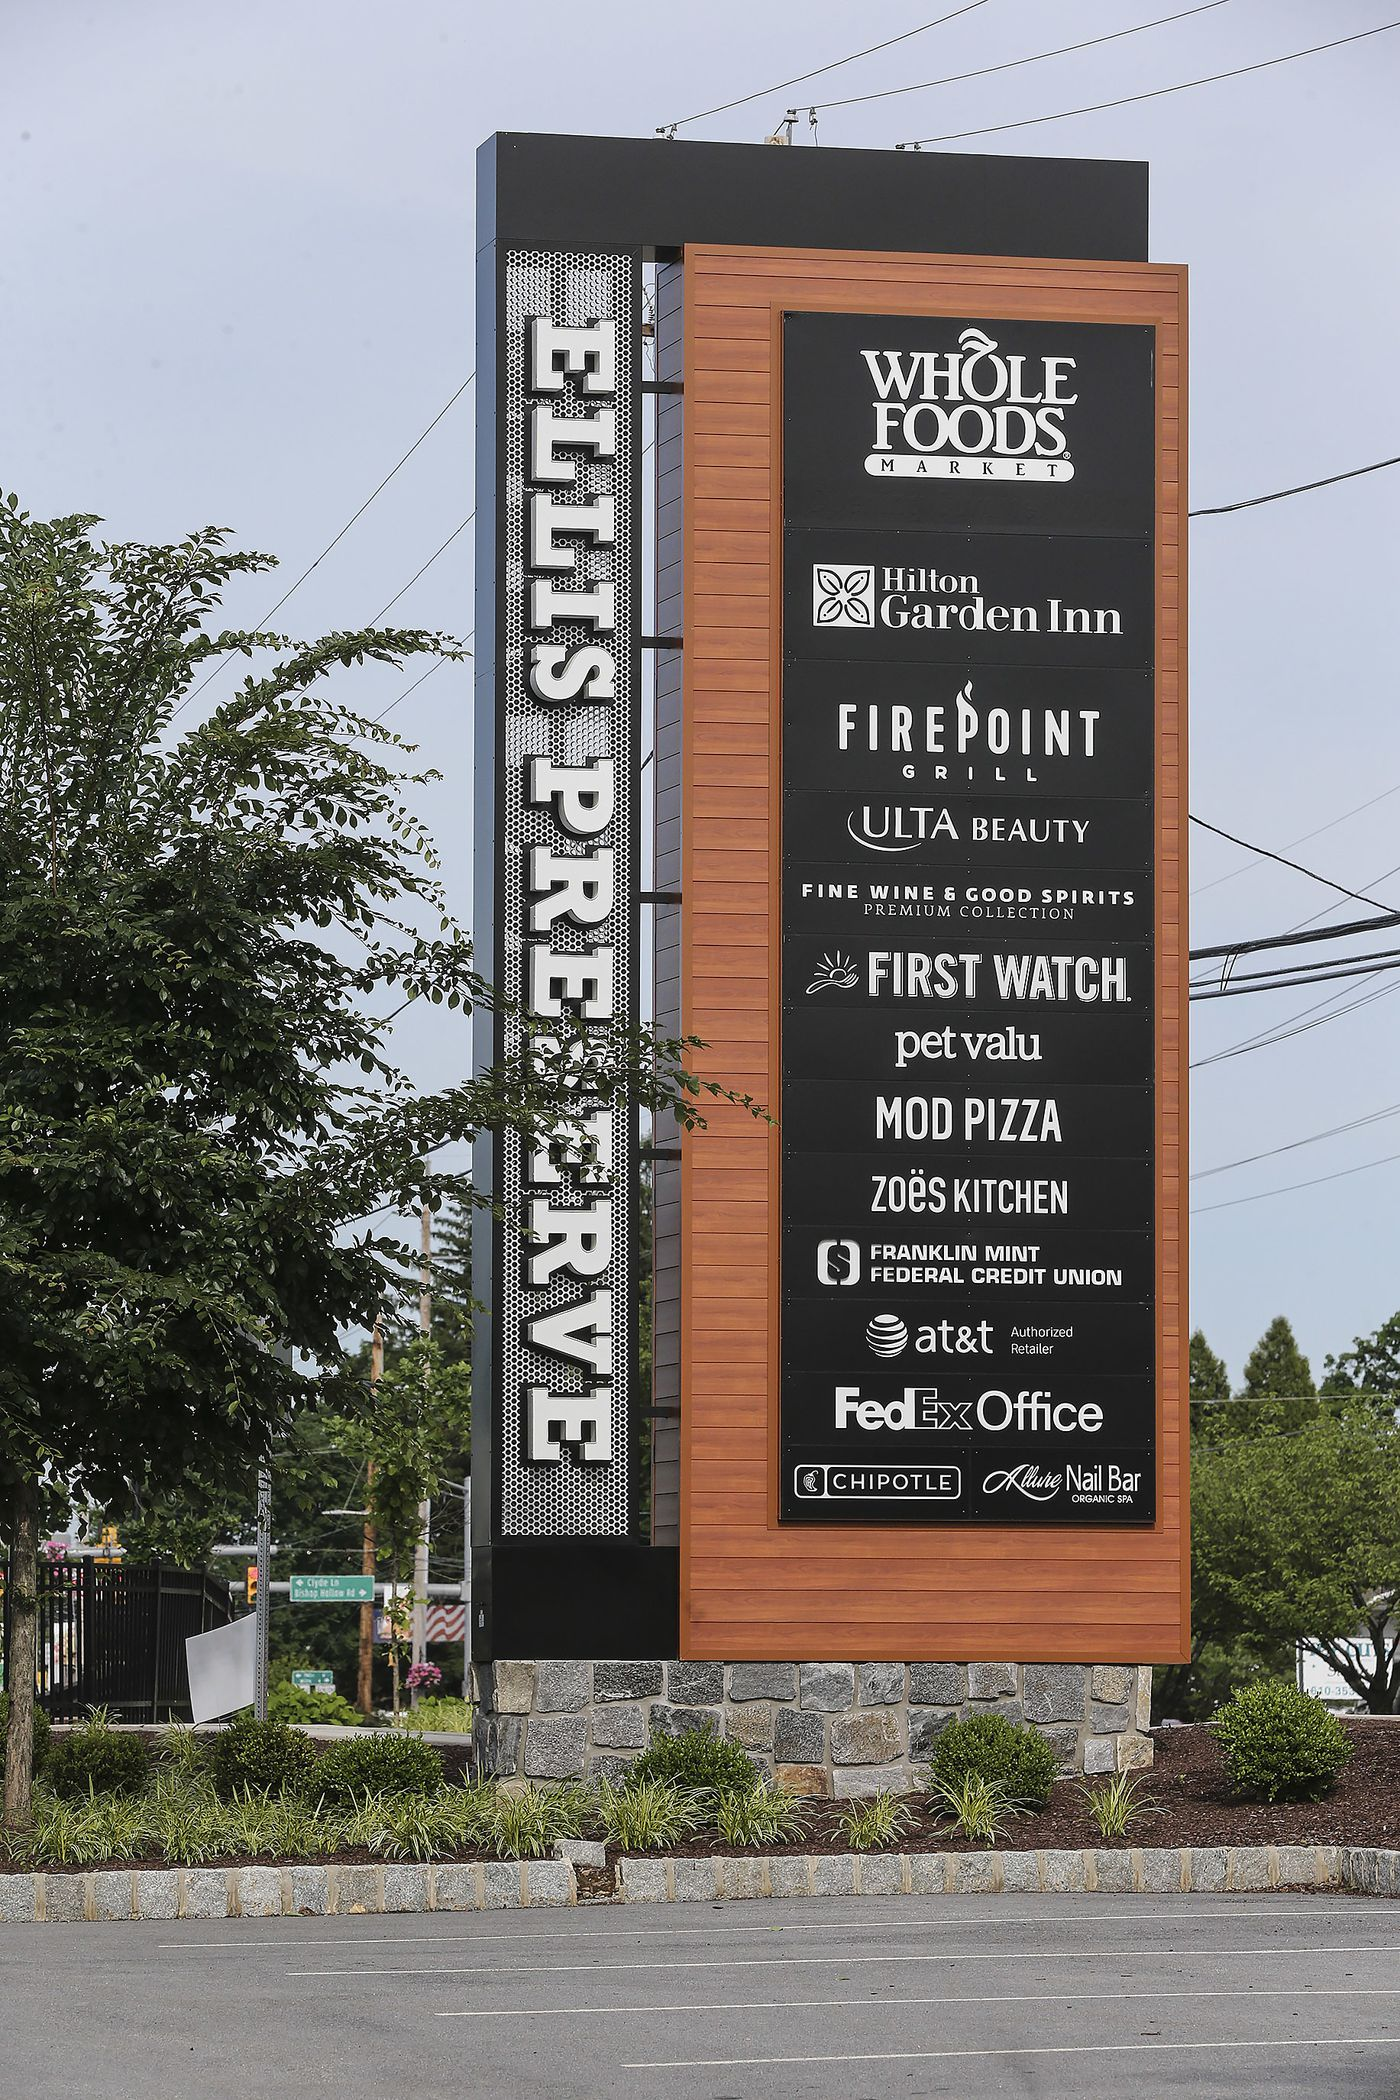 Whole foods to open in newtown square after years of delay - Mostardi s newtown square garden ...